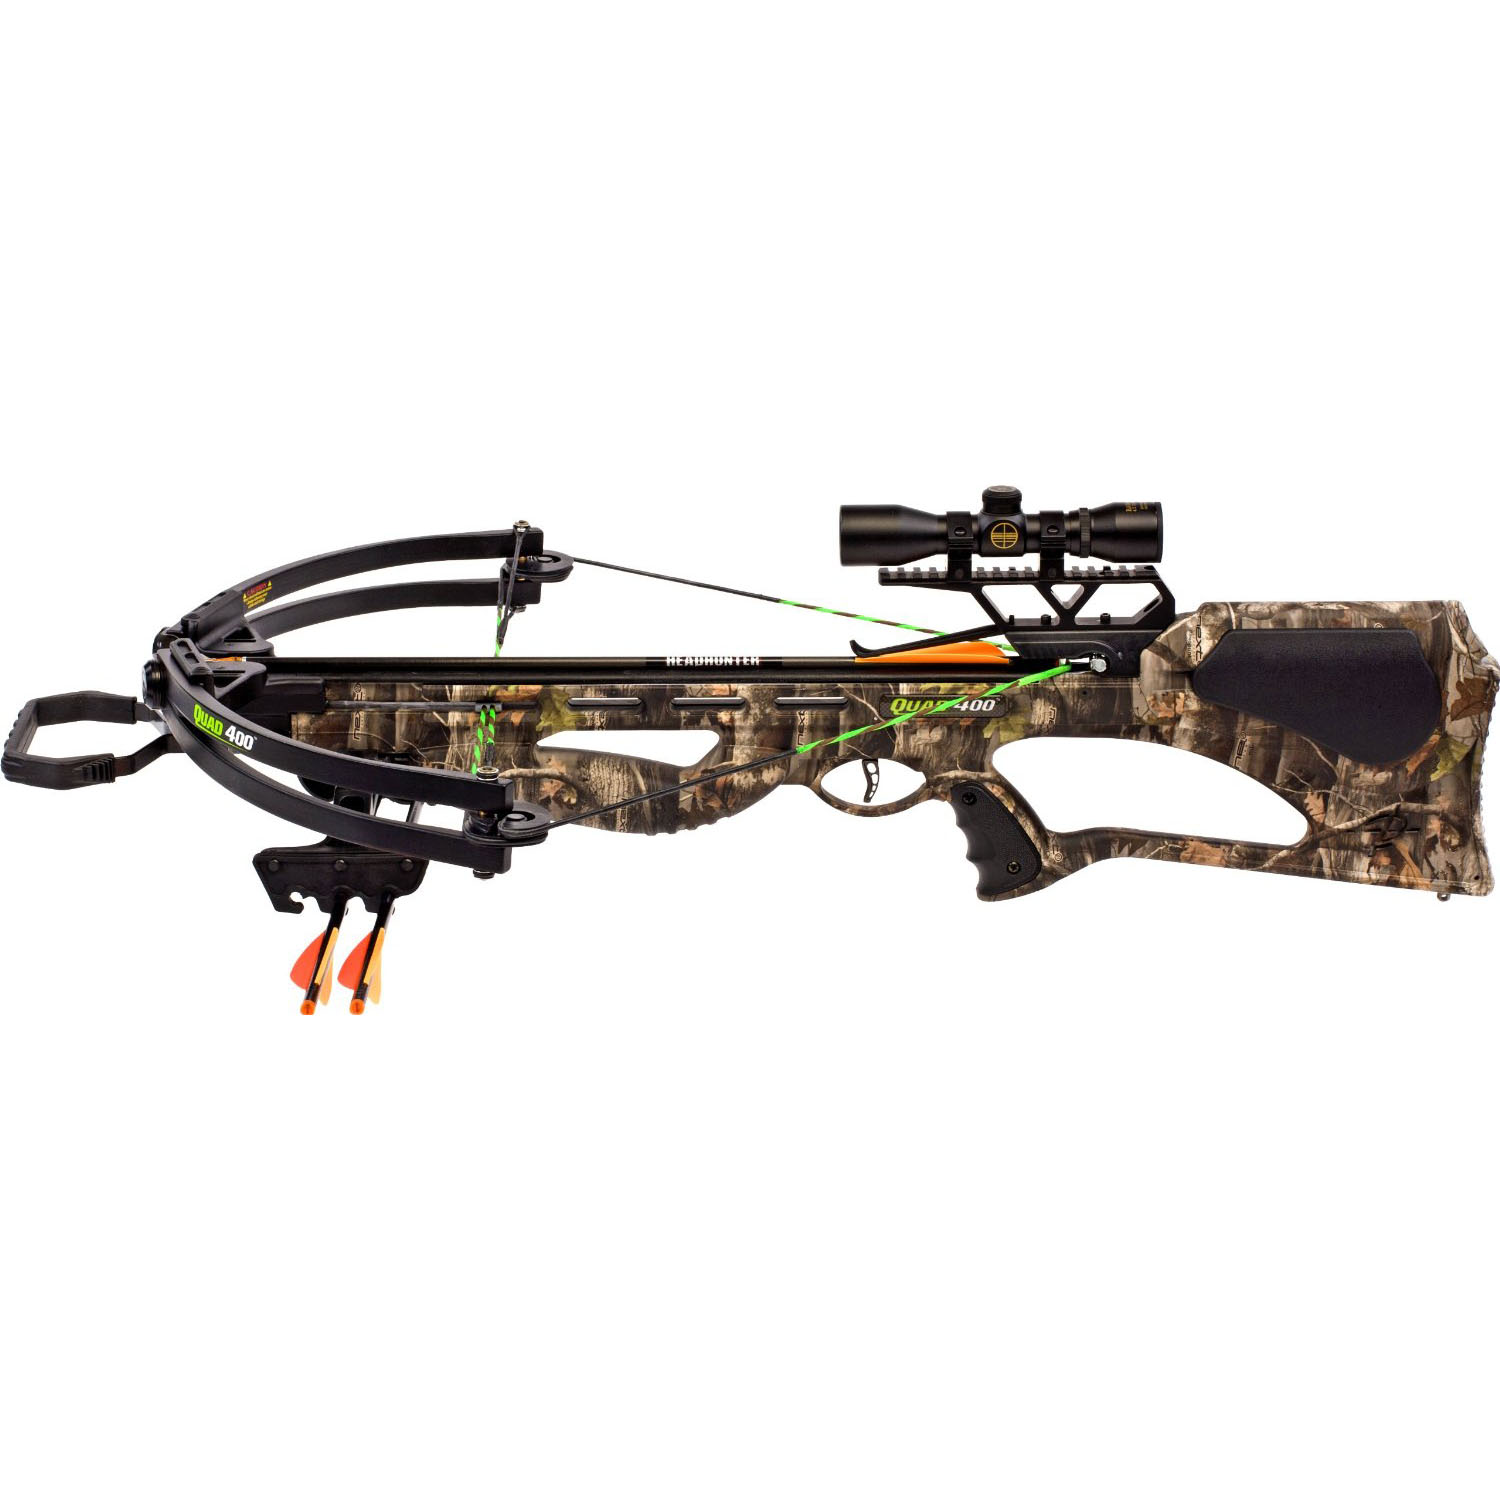 Barnett Quad 400 Review A Compound Crossbow Inspection